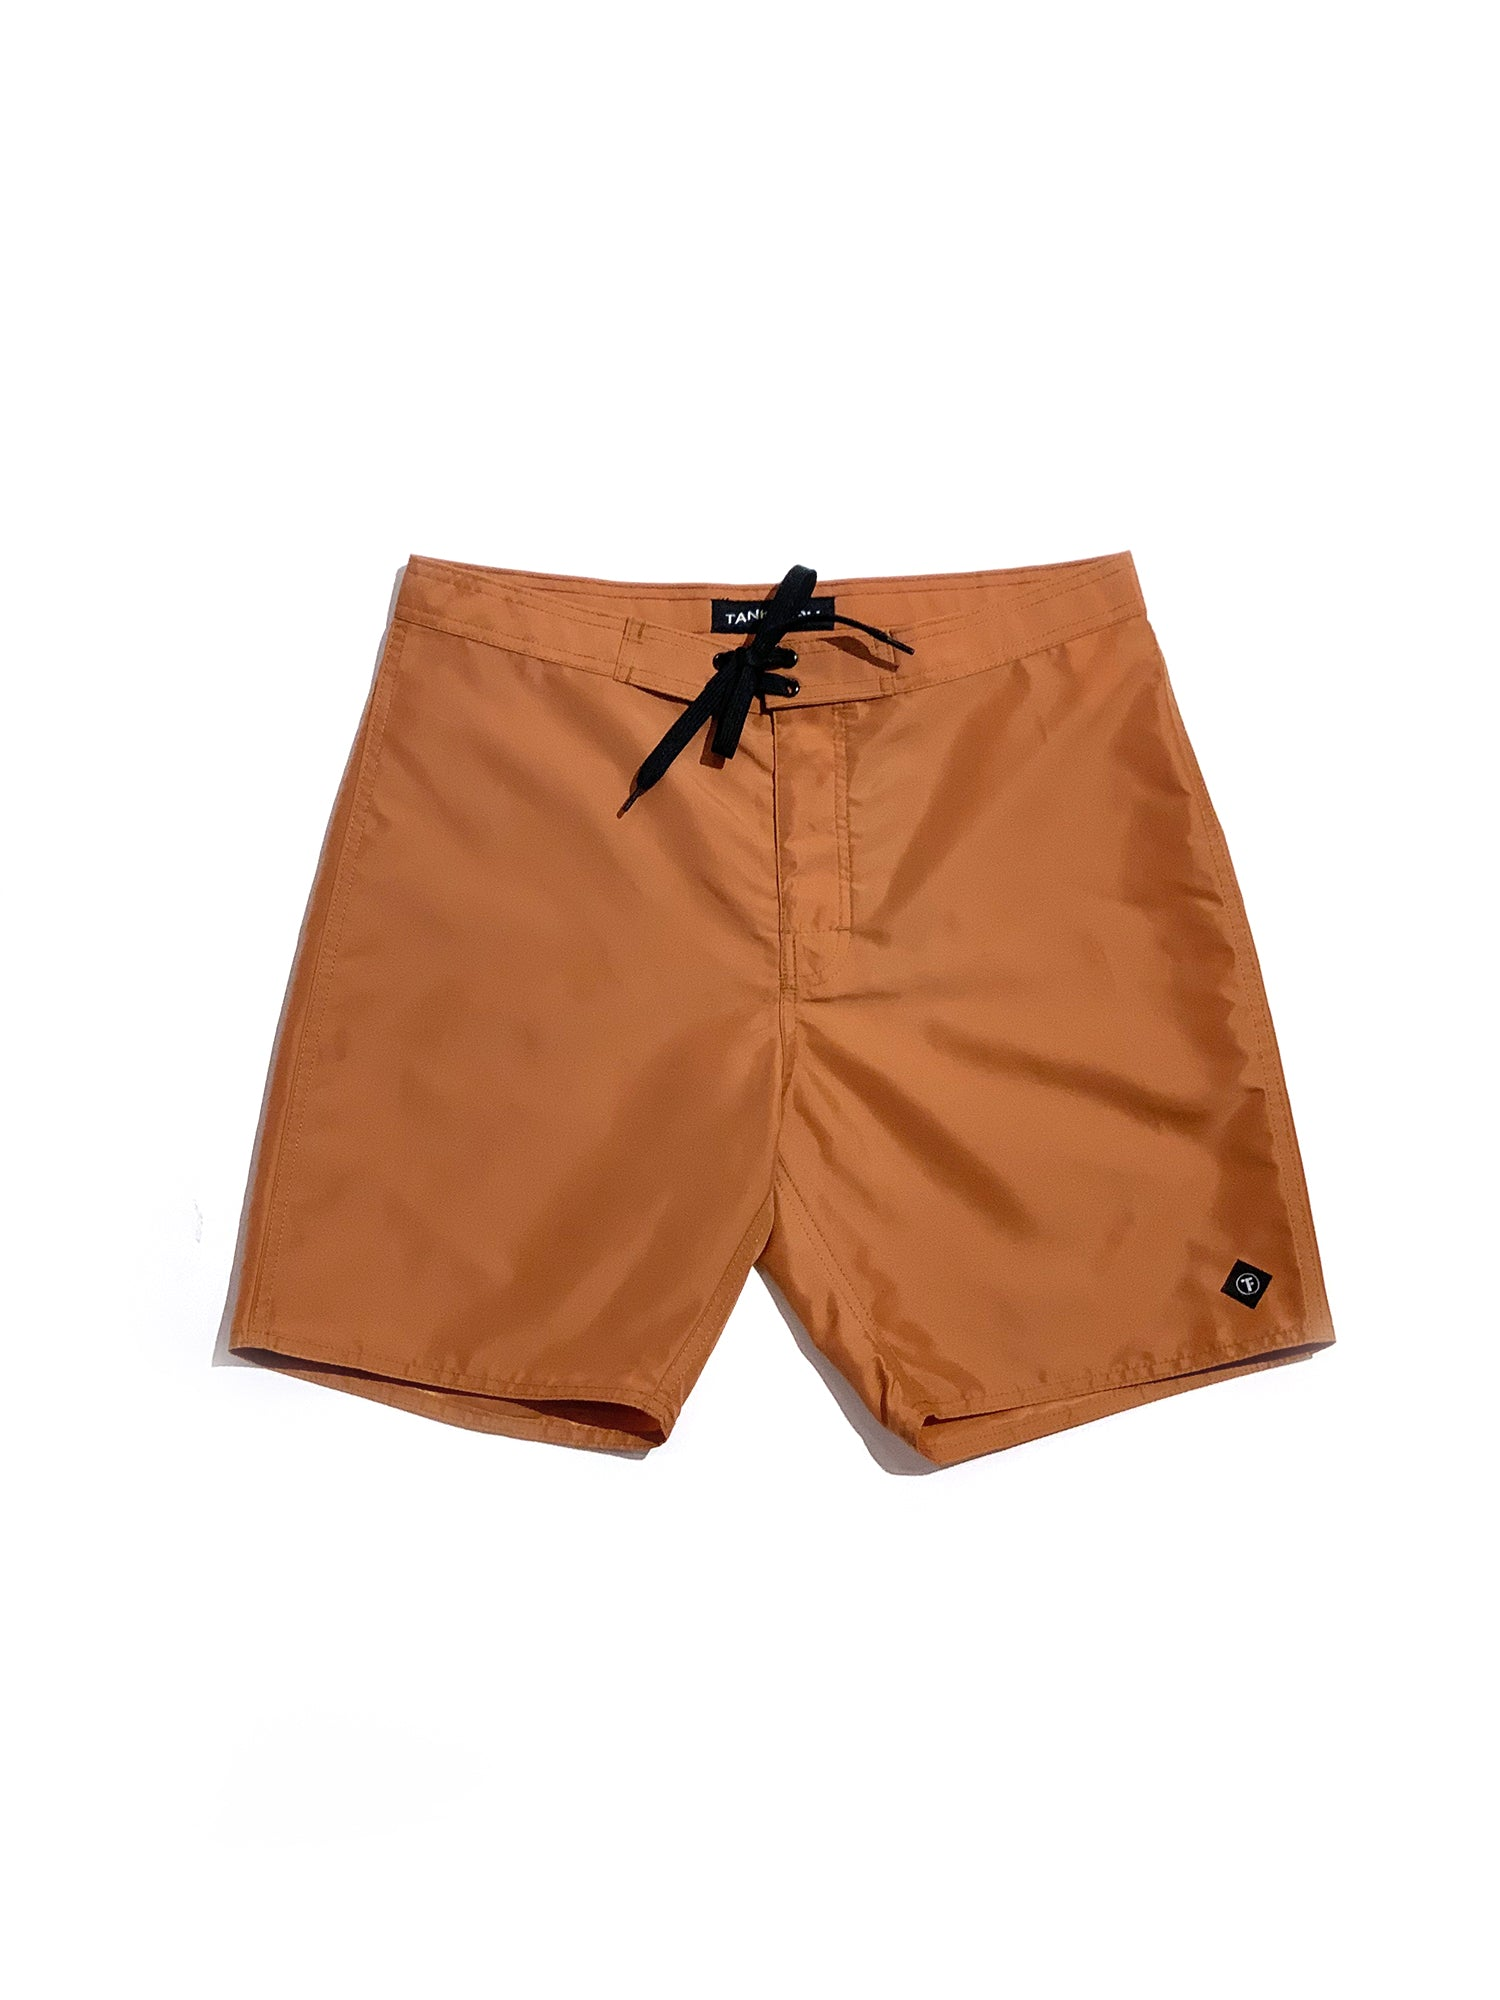 SEASIDE BOARDSHORT- RUST - Tankfarm & Co.